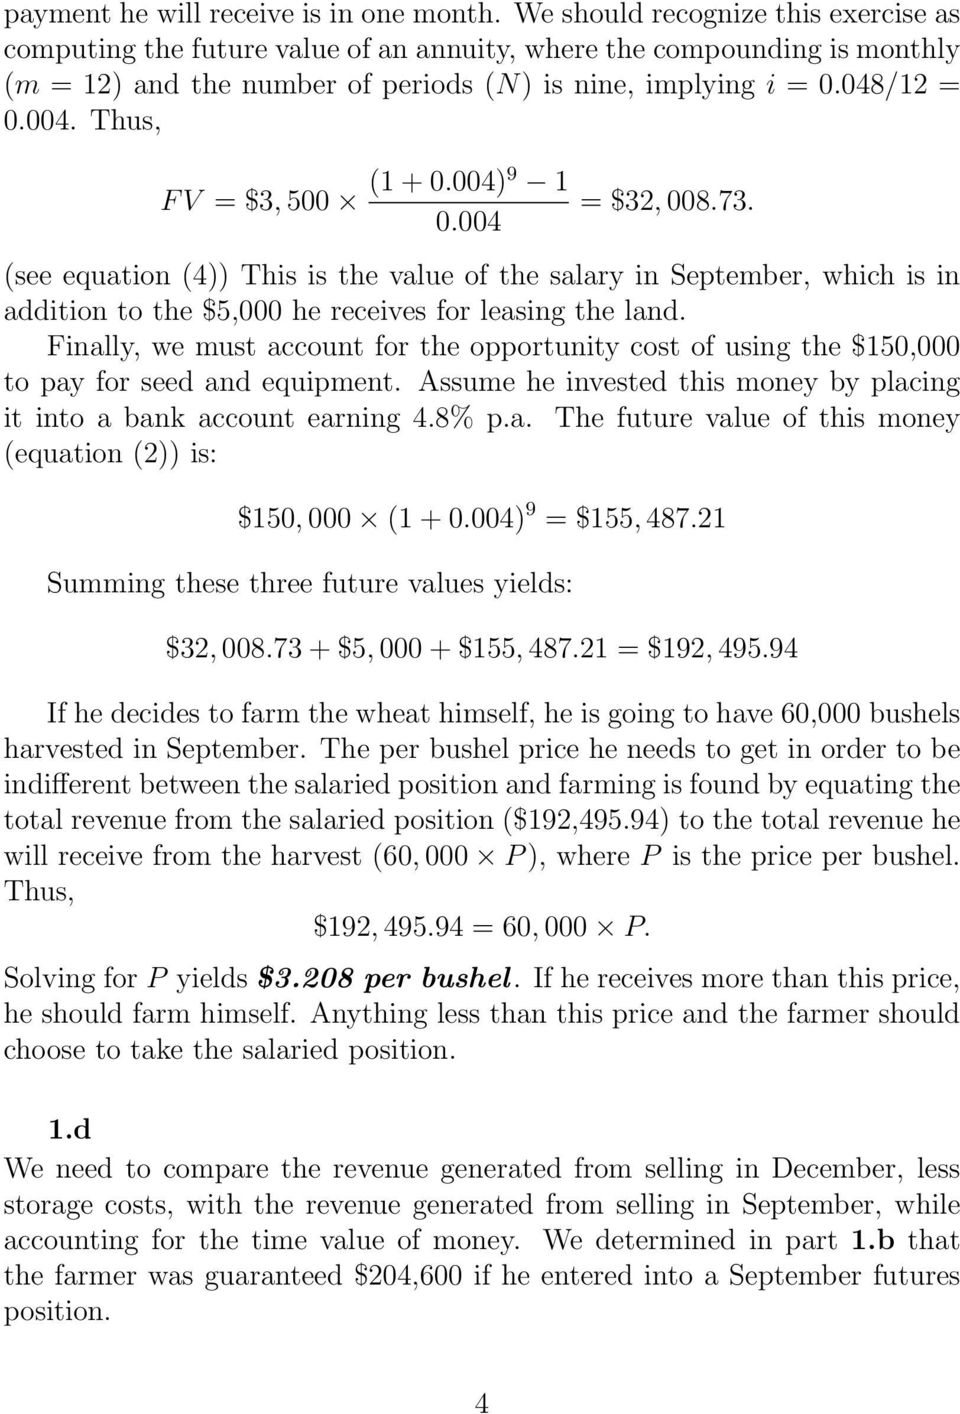 Thus, F V = $3, 500 (1 + 0.004)9 1 0.004 = $32, 008.73. (see equation (4)) This is the value of the salary in September, which is in addition to the $5,000 he receives for leasing the land.